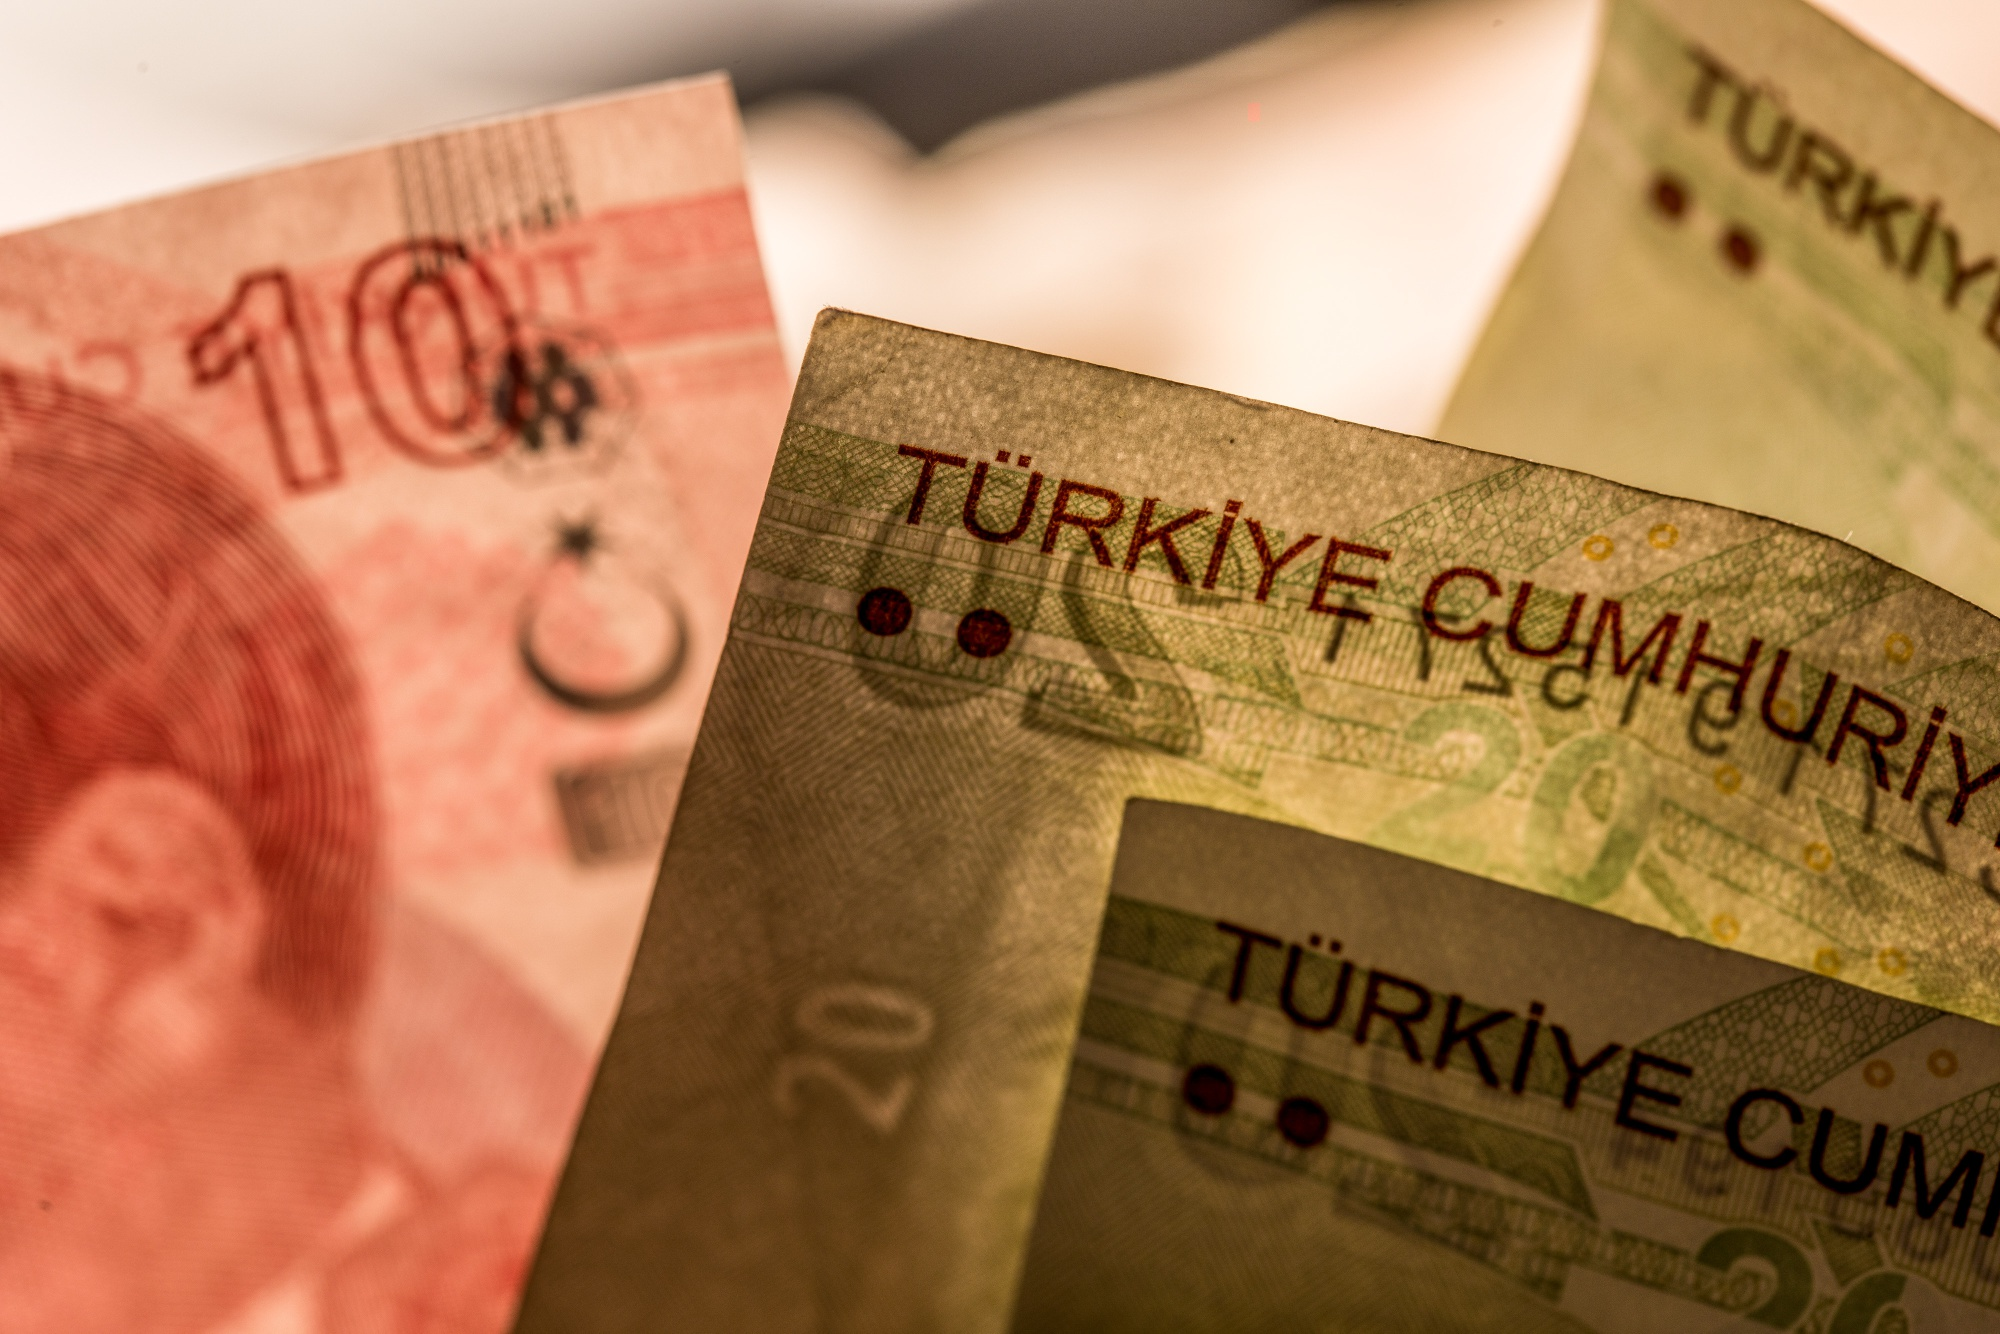 Turkey Told Bankers It May Exceed Targets for Borrowing